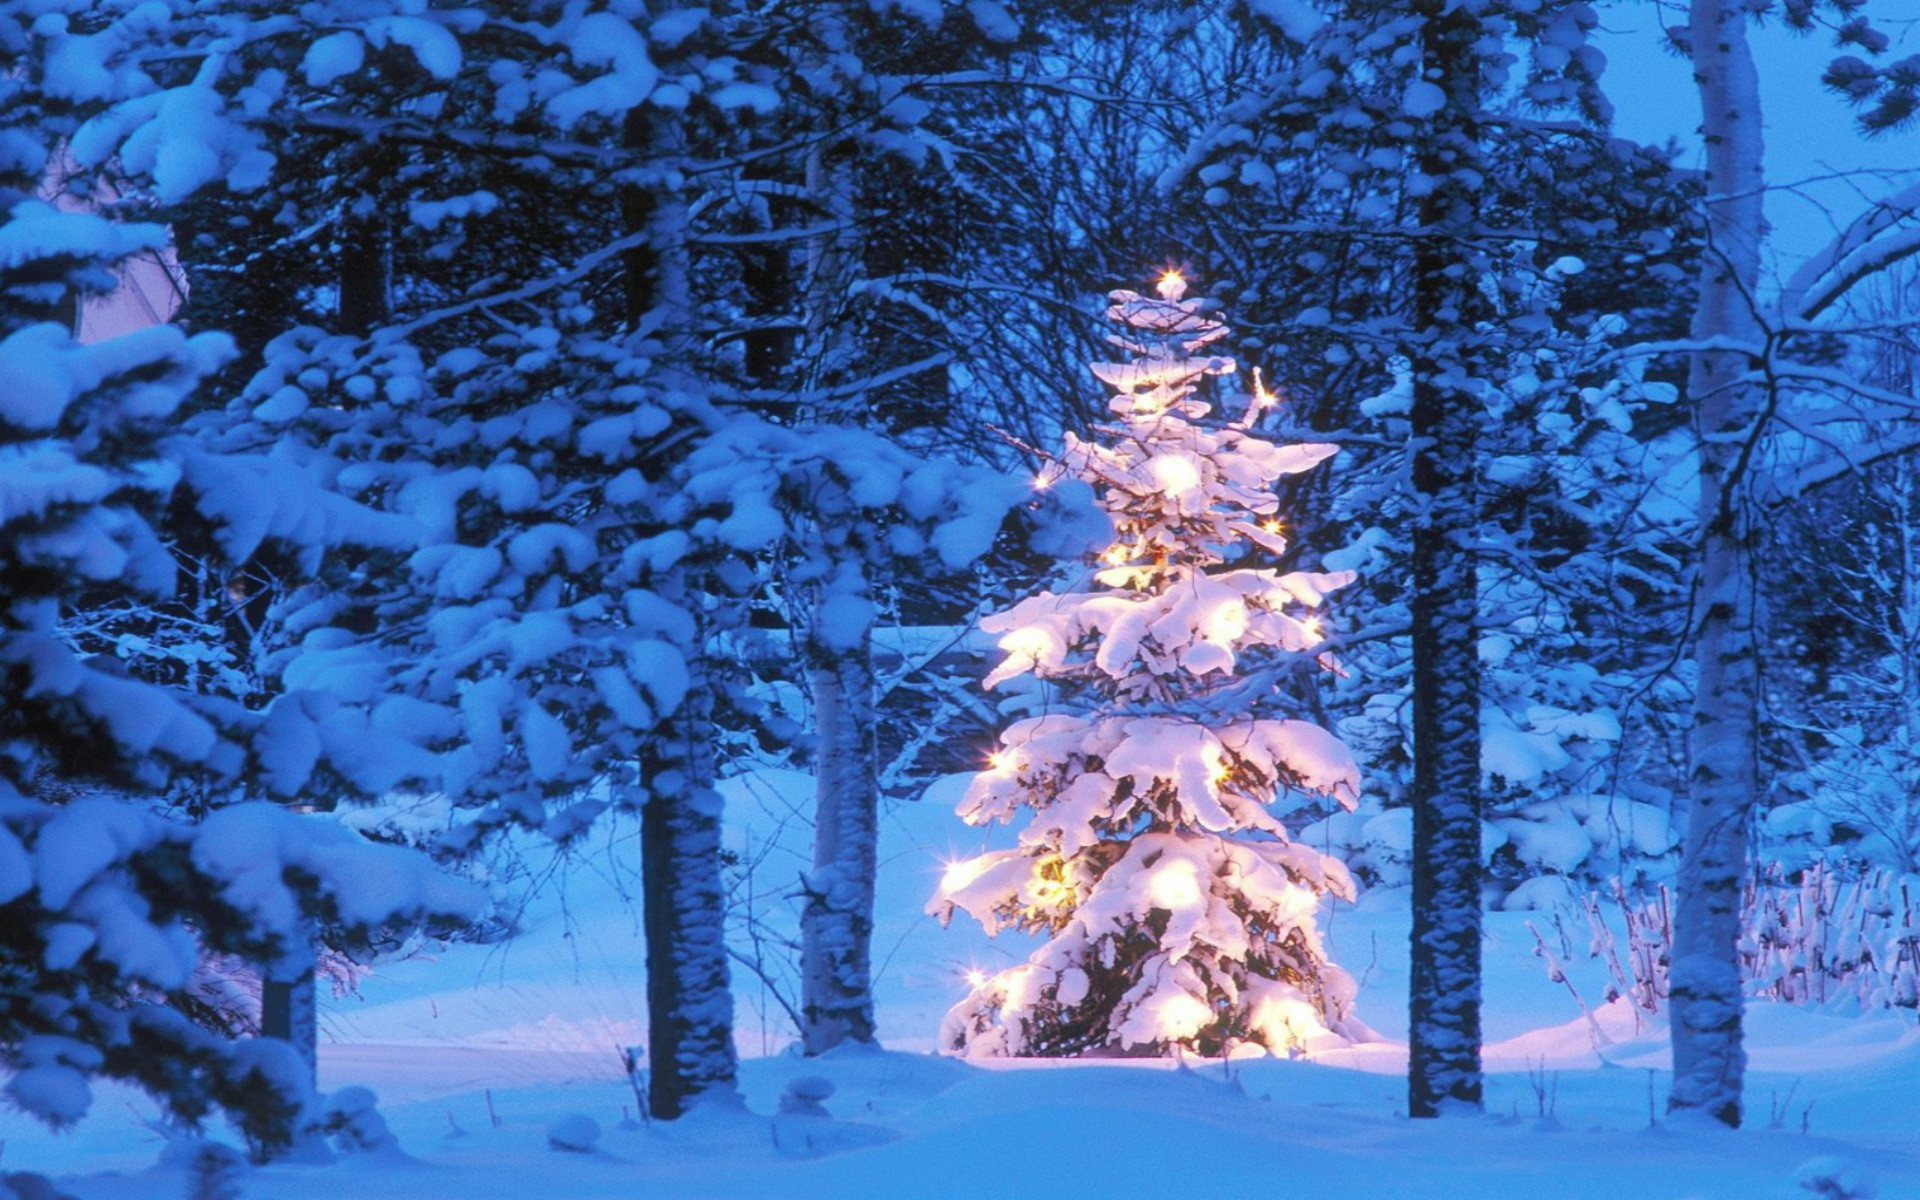 Free Christmas Wallpaper Backgrounds.74 Christmas Tree Desktop Background